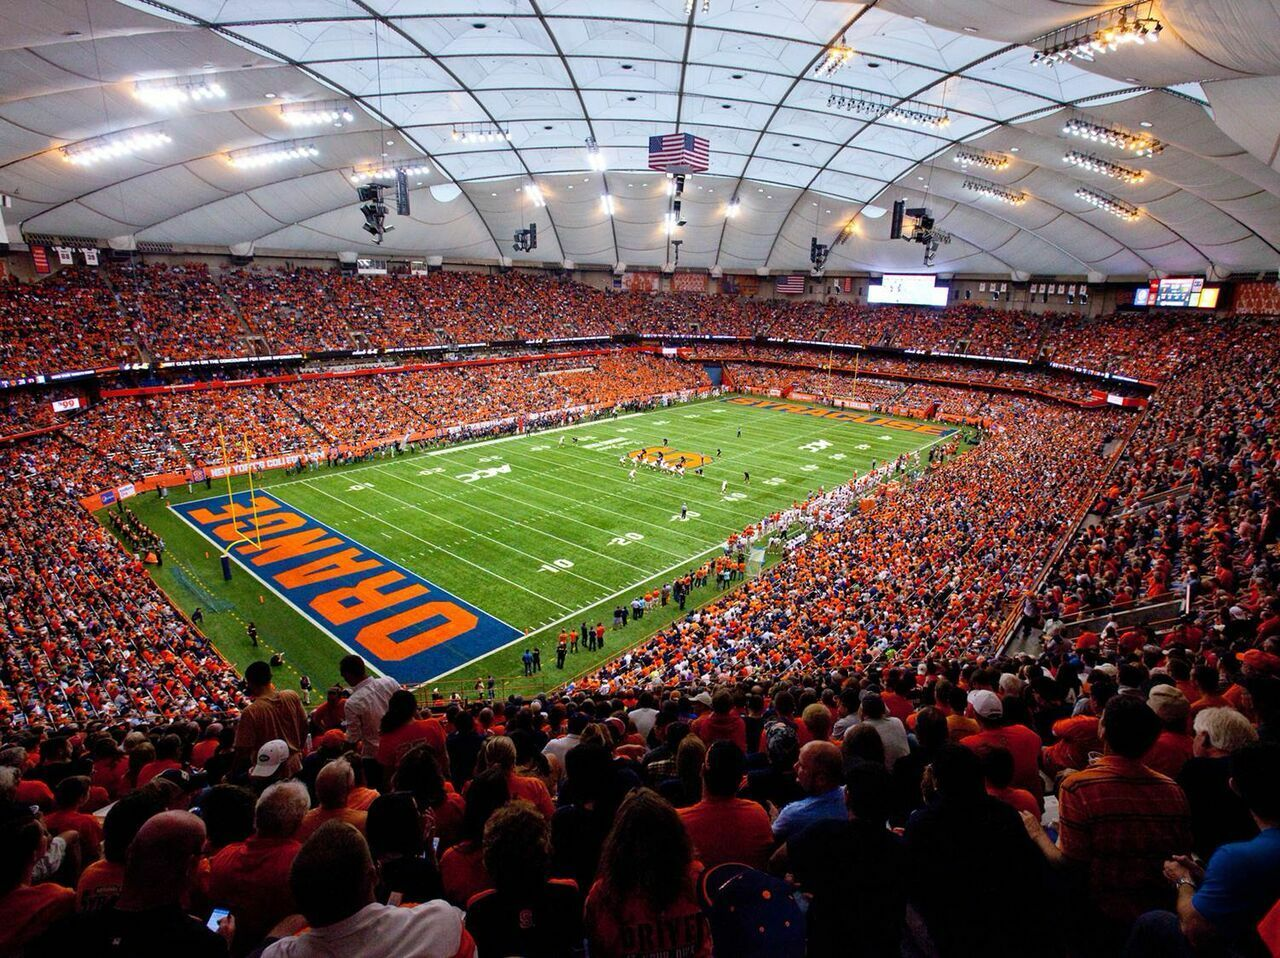 2018 Syracuse Orange Football Season Tickets - Season Package (Includes Tickets for all Home Games)